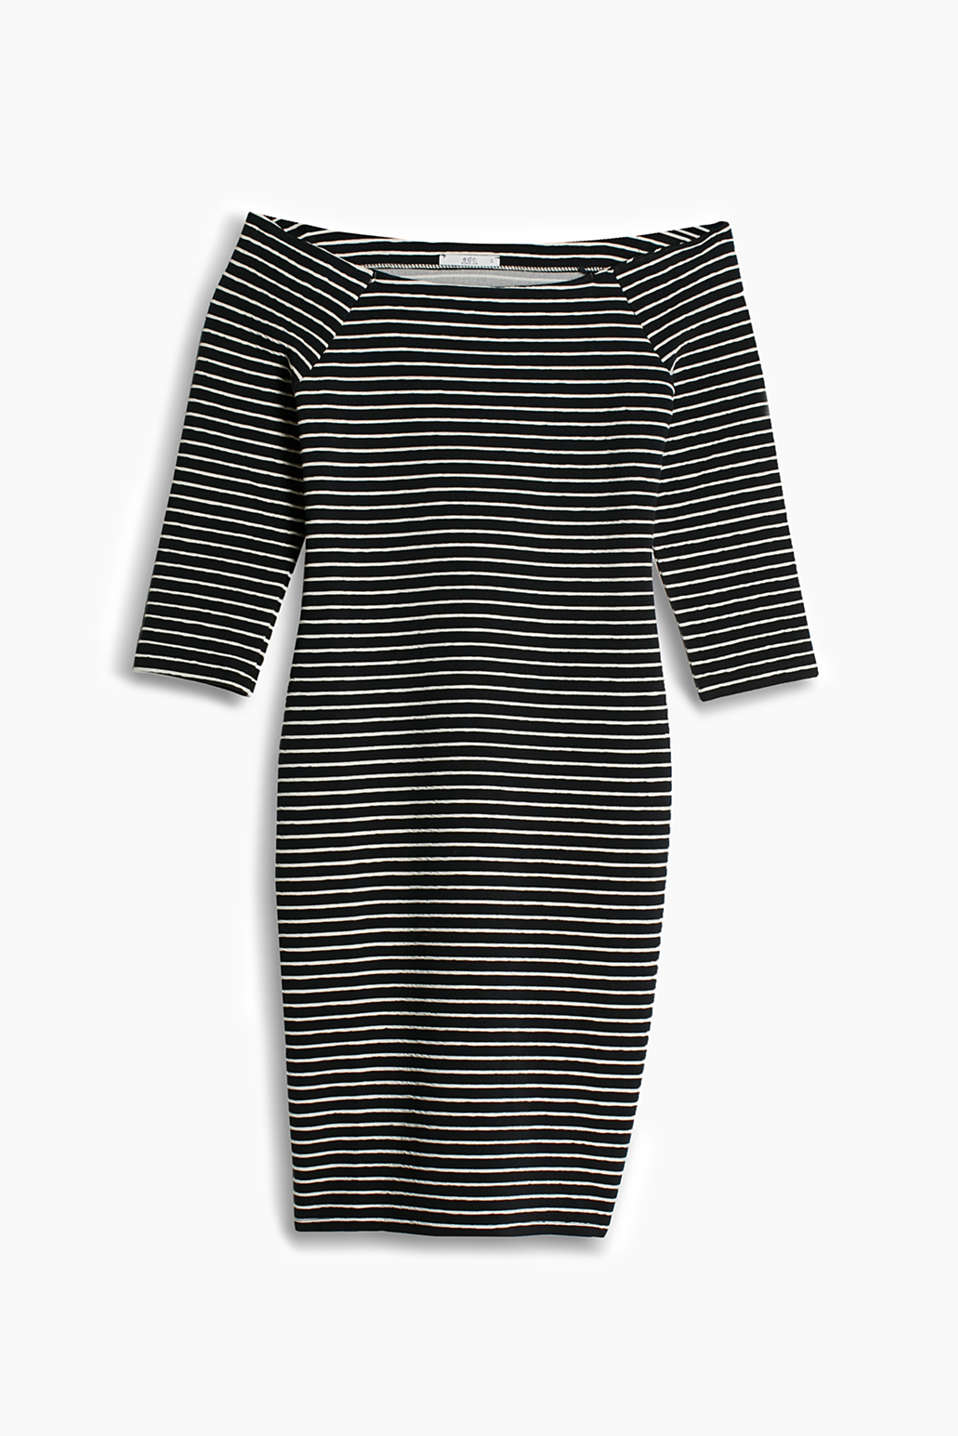 Sea ahoy! Off-the-shoulder dress made of dense stretch jersey with nautical textured stripes